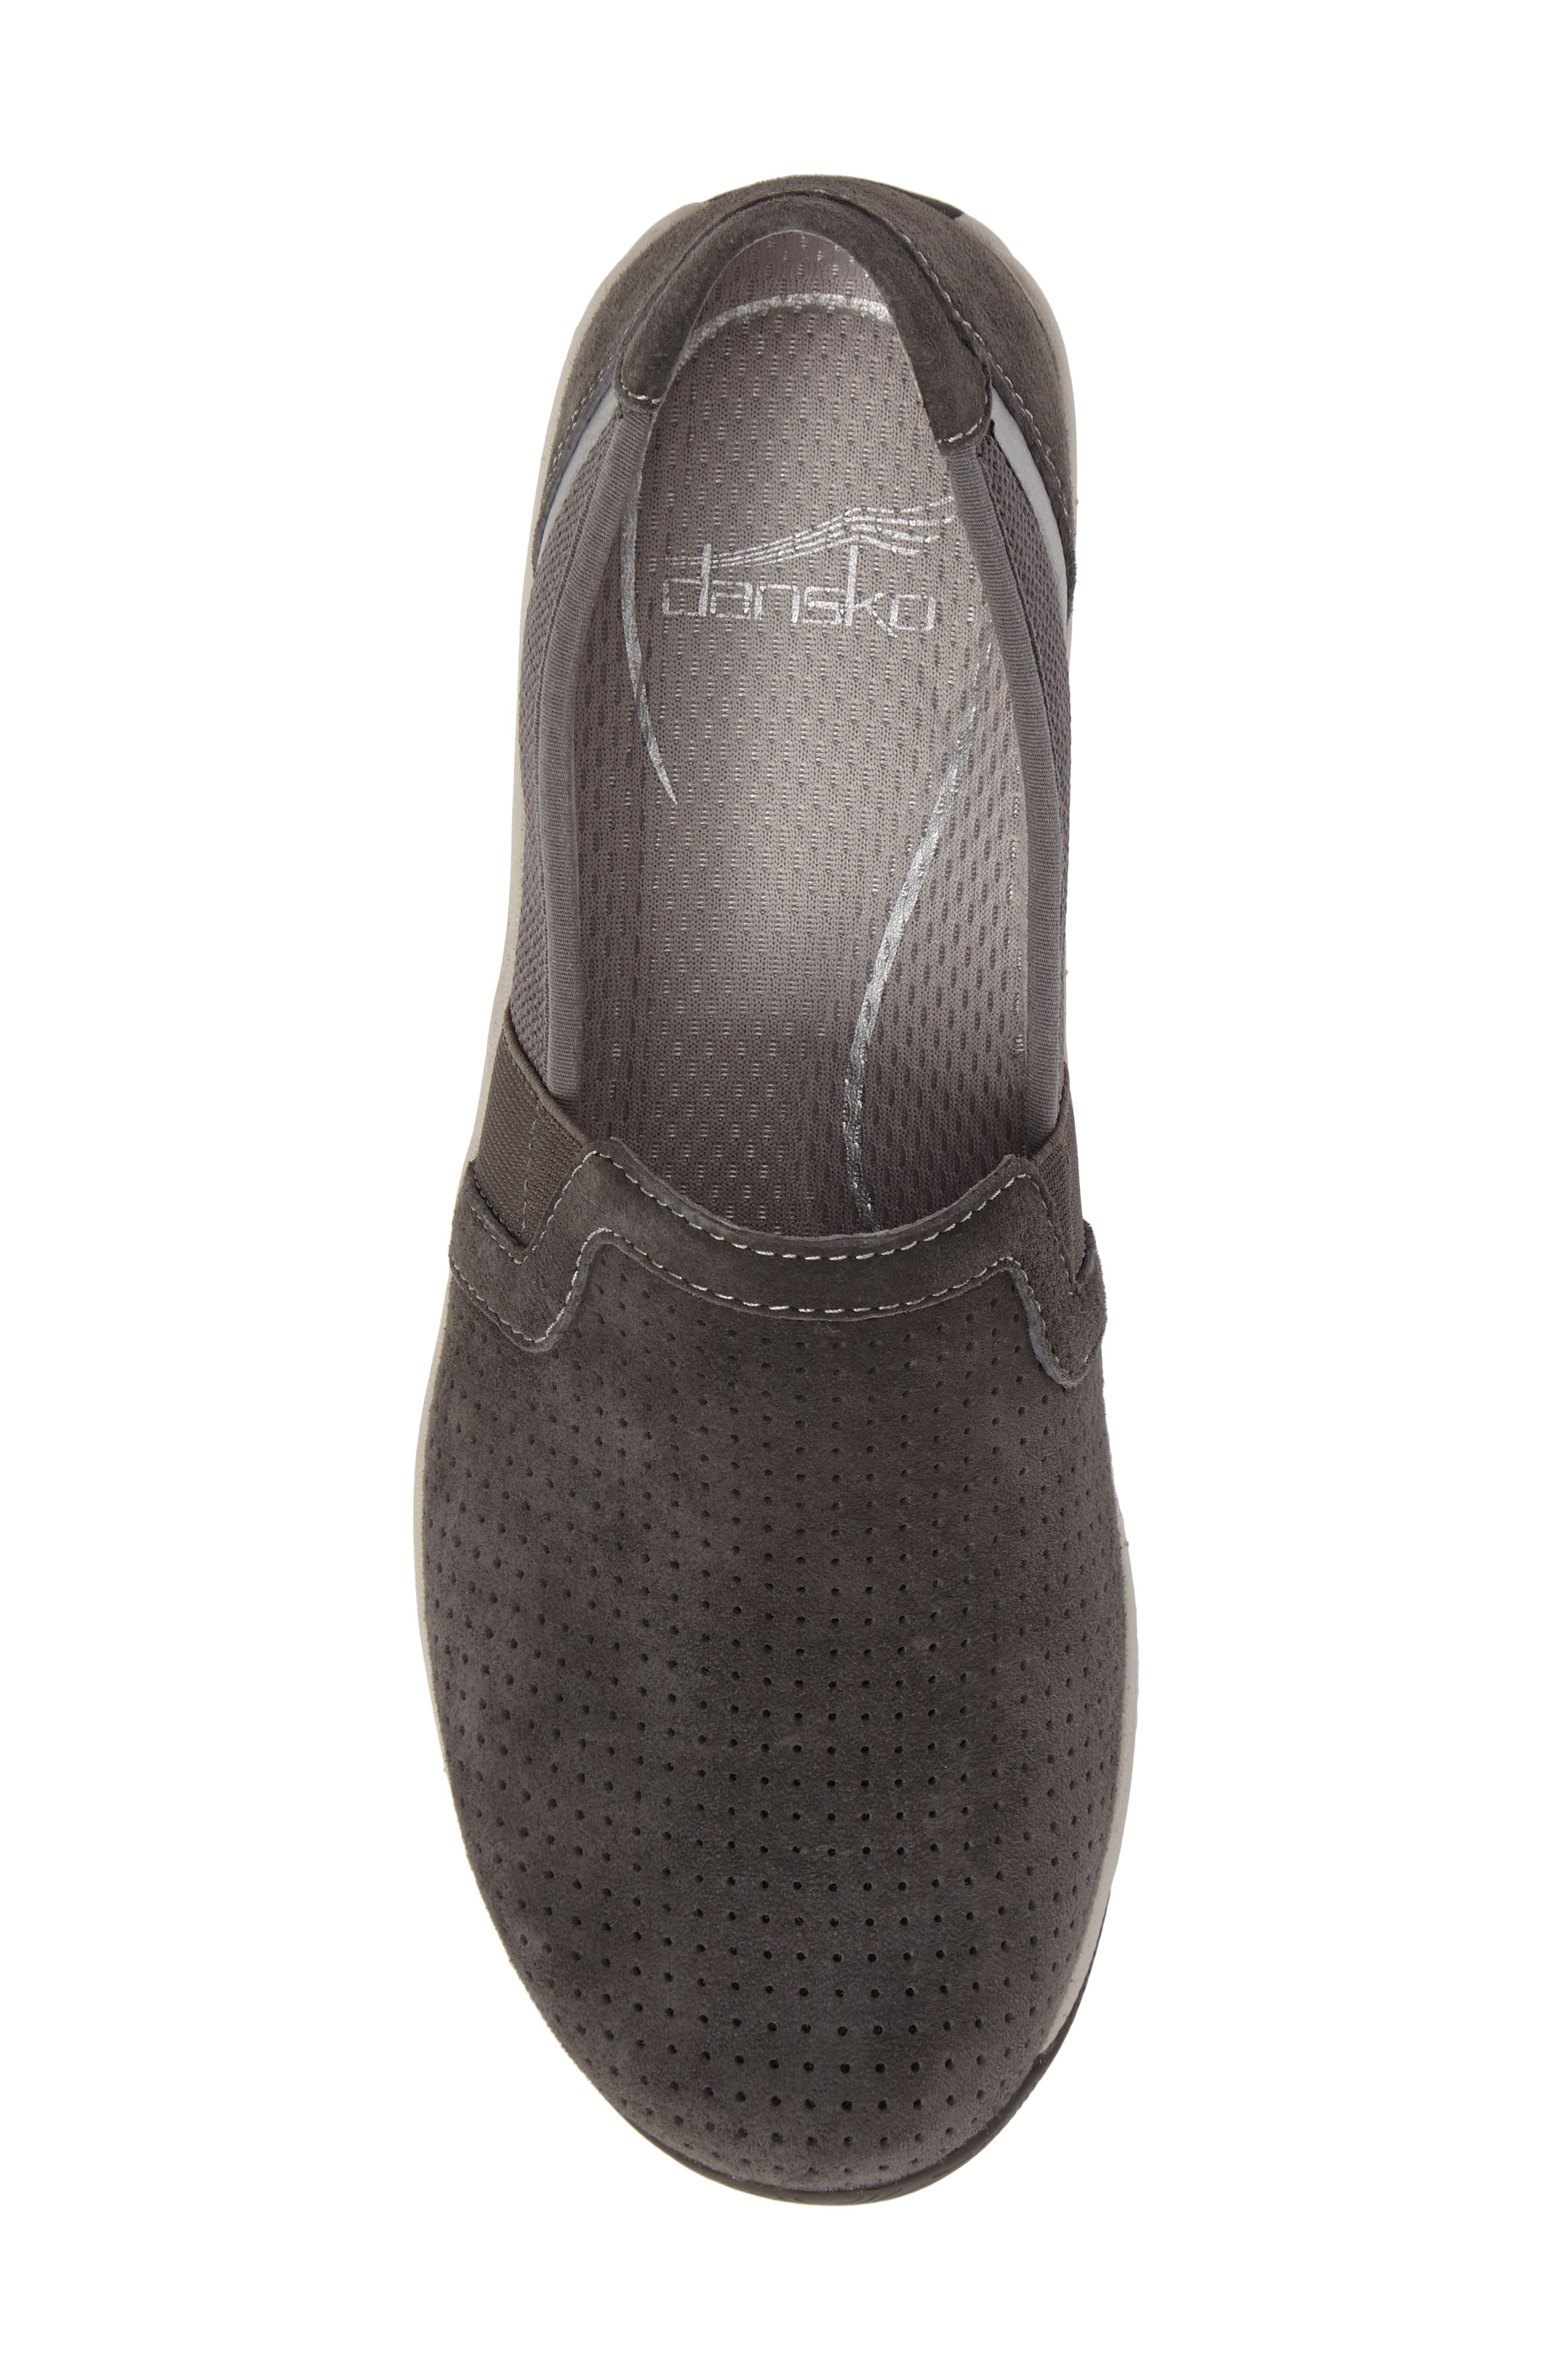 Halifax Collection Halle Slip-On Sneaker,                             Alternate thumbnail 14, color,